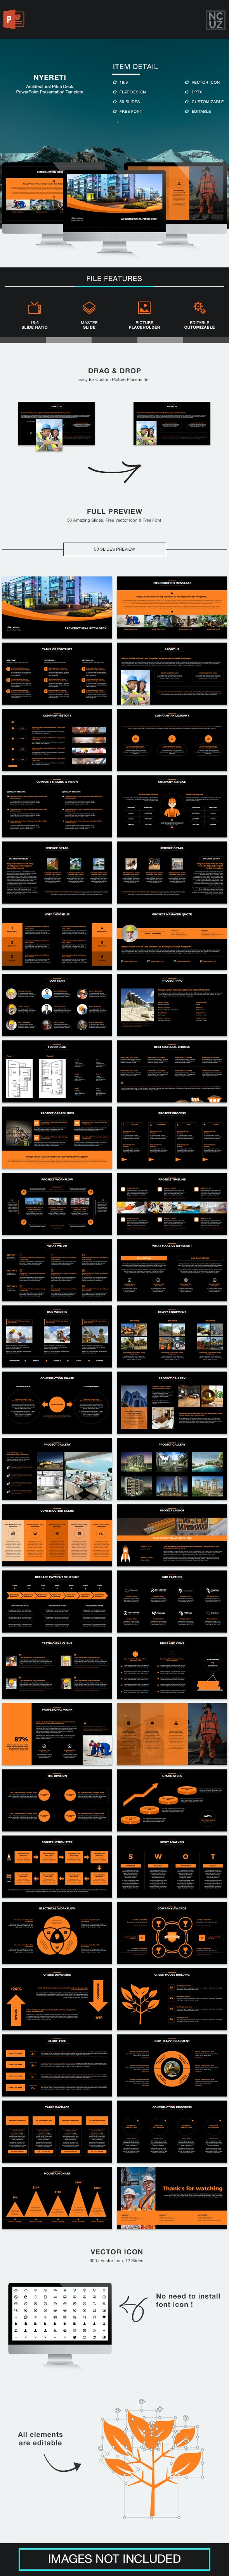 Nyereti Architectural Pitch Deck PowerPoint Template - Pitch Deck PowerPoint Templates